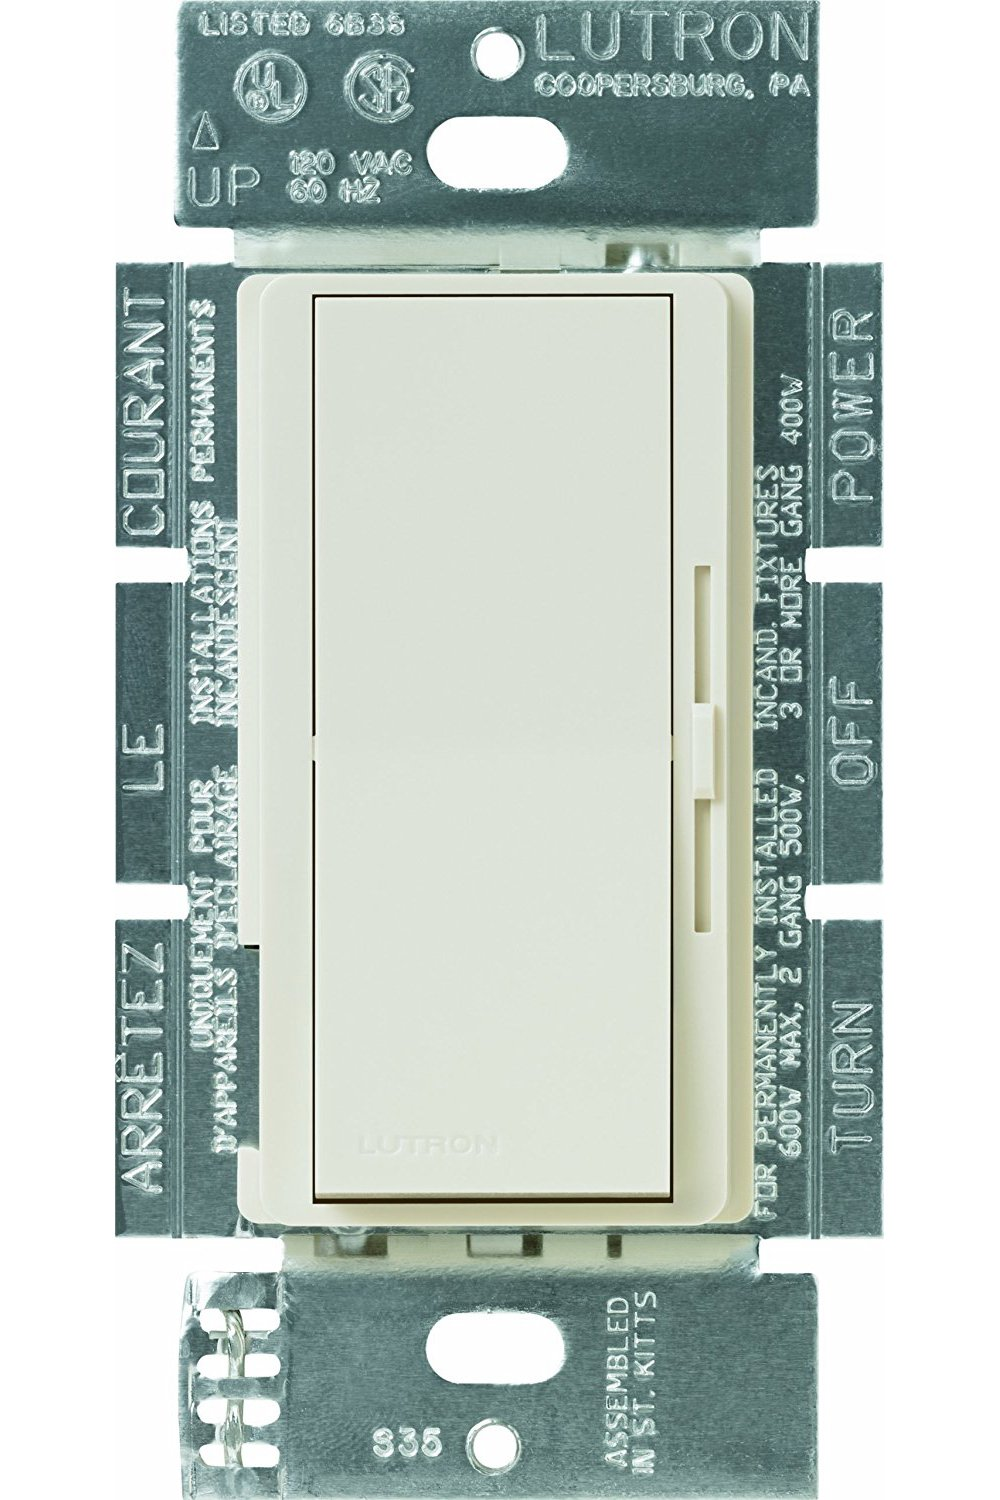 Lutron Diva Fan Control and Light Switch for LEDs, CFLs, Incandescent and Halogen Bulbs, DVFSQ-LF-LA, Light Almond by Lutron